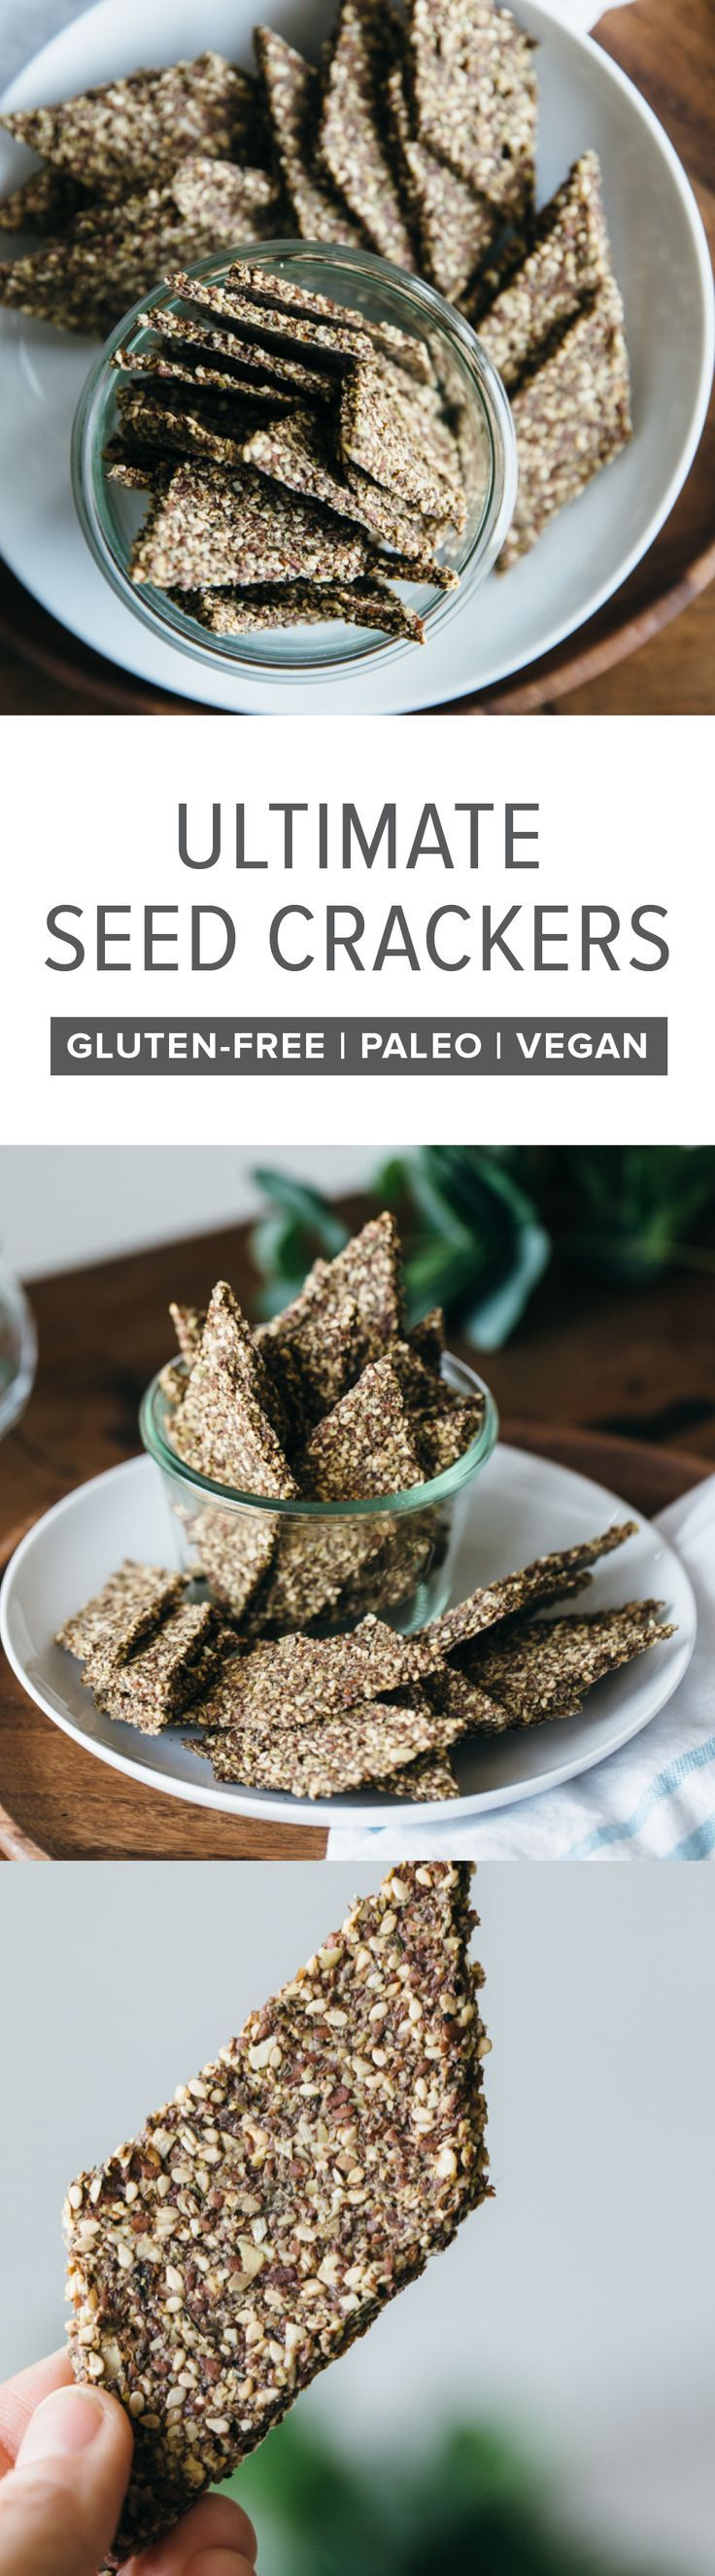 ultimate seed crackers rezept brote pinterest glutenfrei vegan und brot. Black Bedroom Furniture Sets. Home Design Ideas